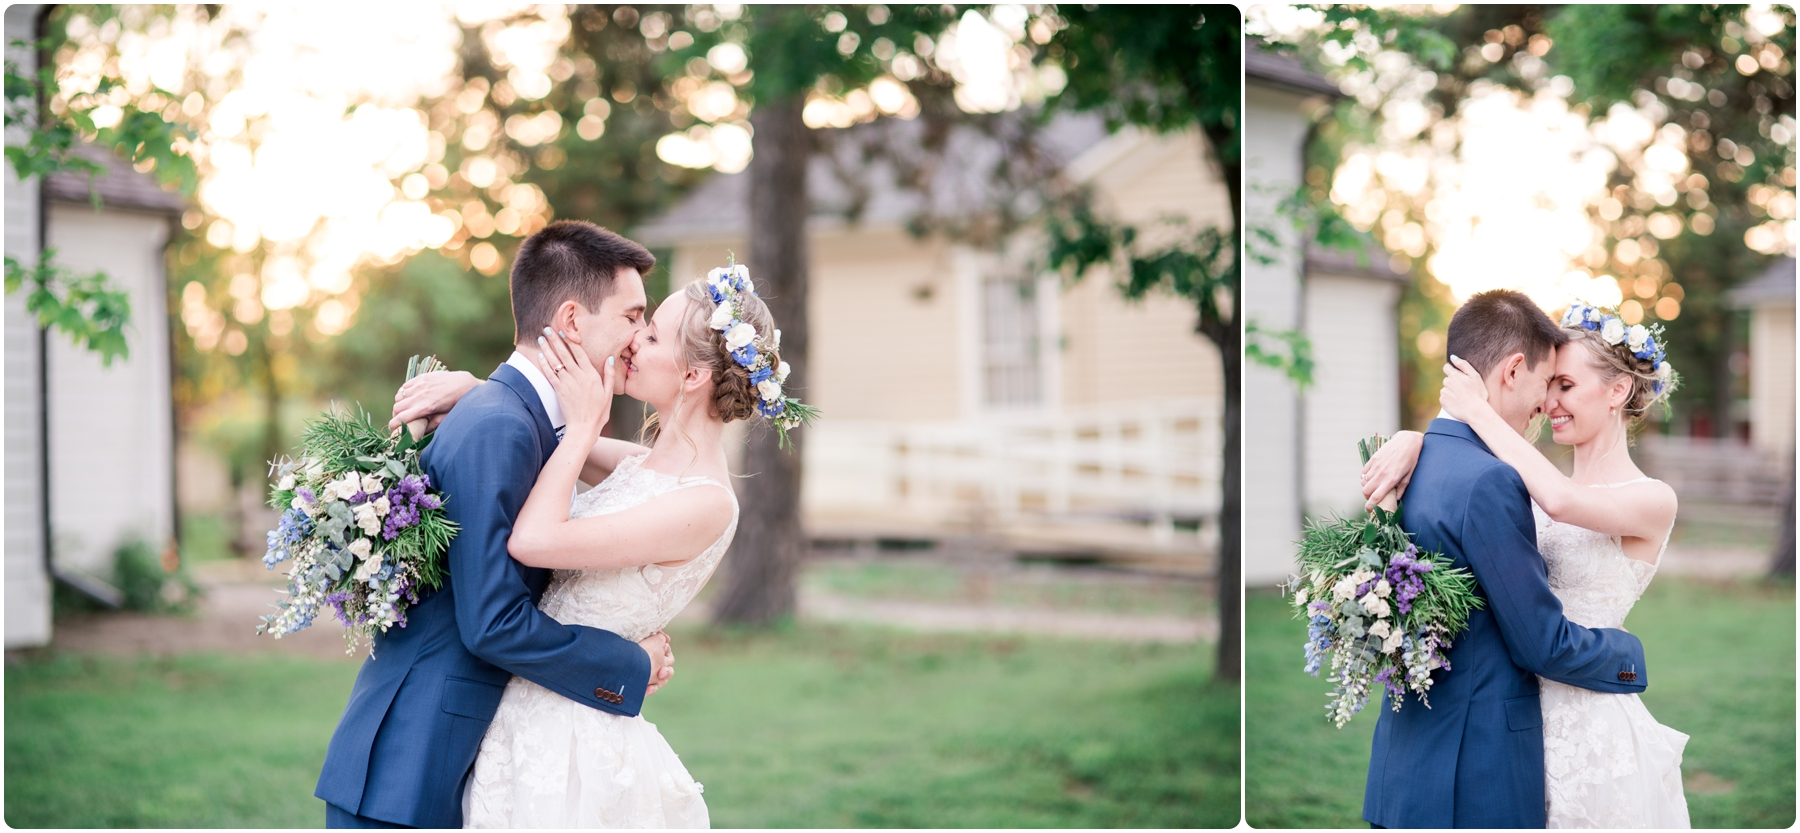 Black Creek Pioneer Village Wedding- Agata & Chris_0266